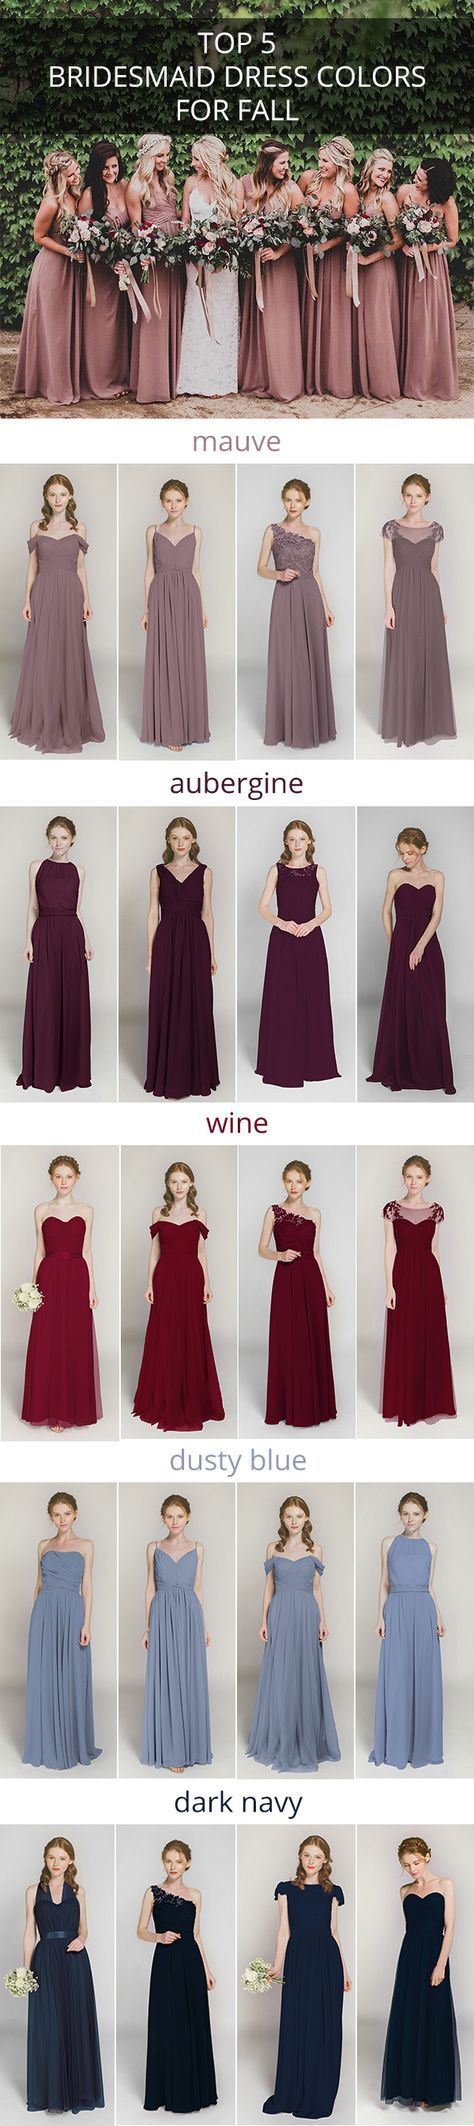 Best color dress to wear to a wedding  Bridesmaid Dresses from   In All Sizes and  Colors  Shop By